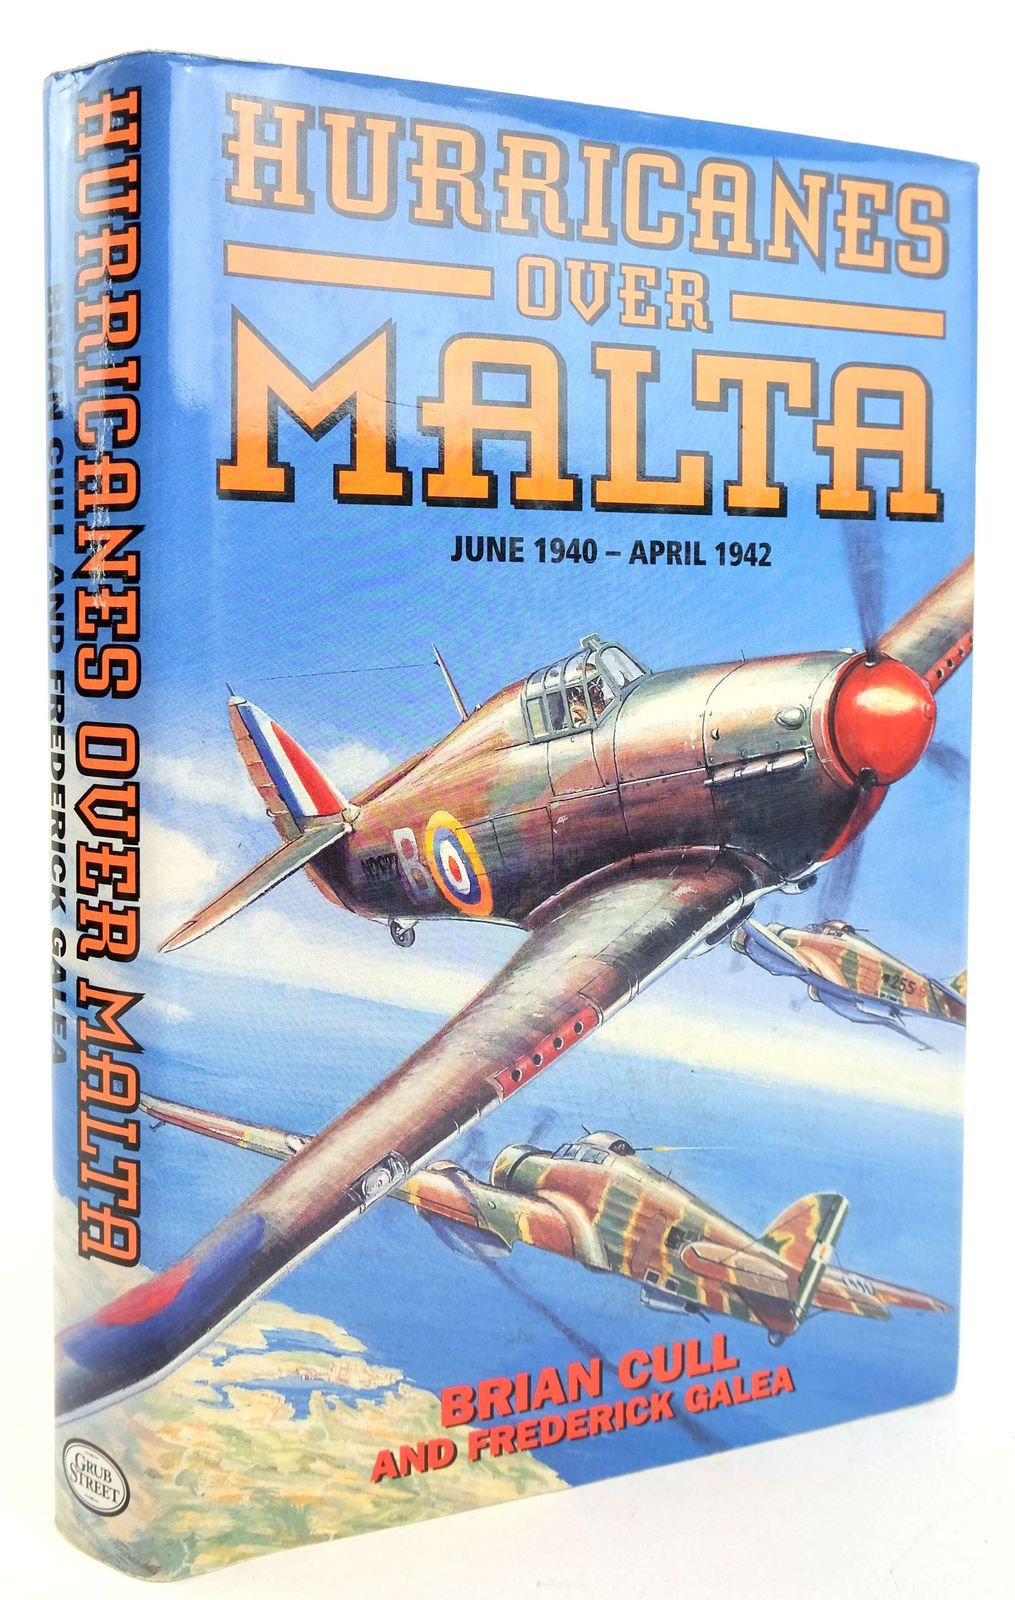 Photo of HURRICANES OVER MALTA JUNE 1940 - APRIL 1942 written by Cull, Brian Galea, Frederick published by Grub Street (STOCK CODE: 1819918)  for sale by Stella & Rose's Books